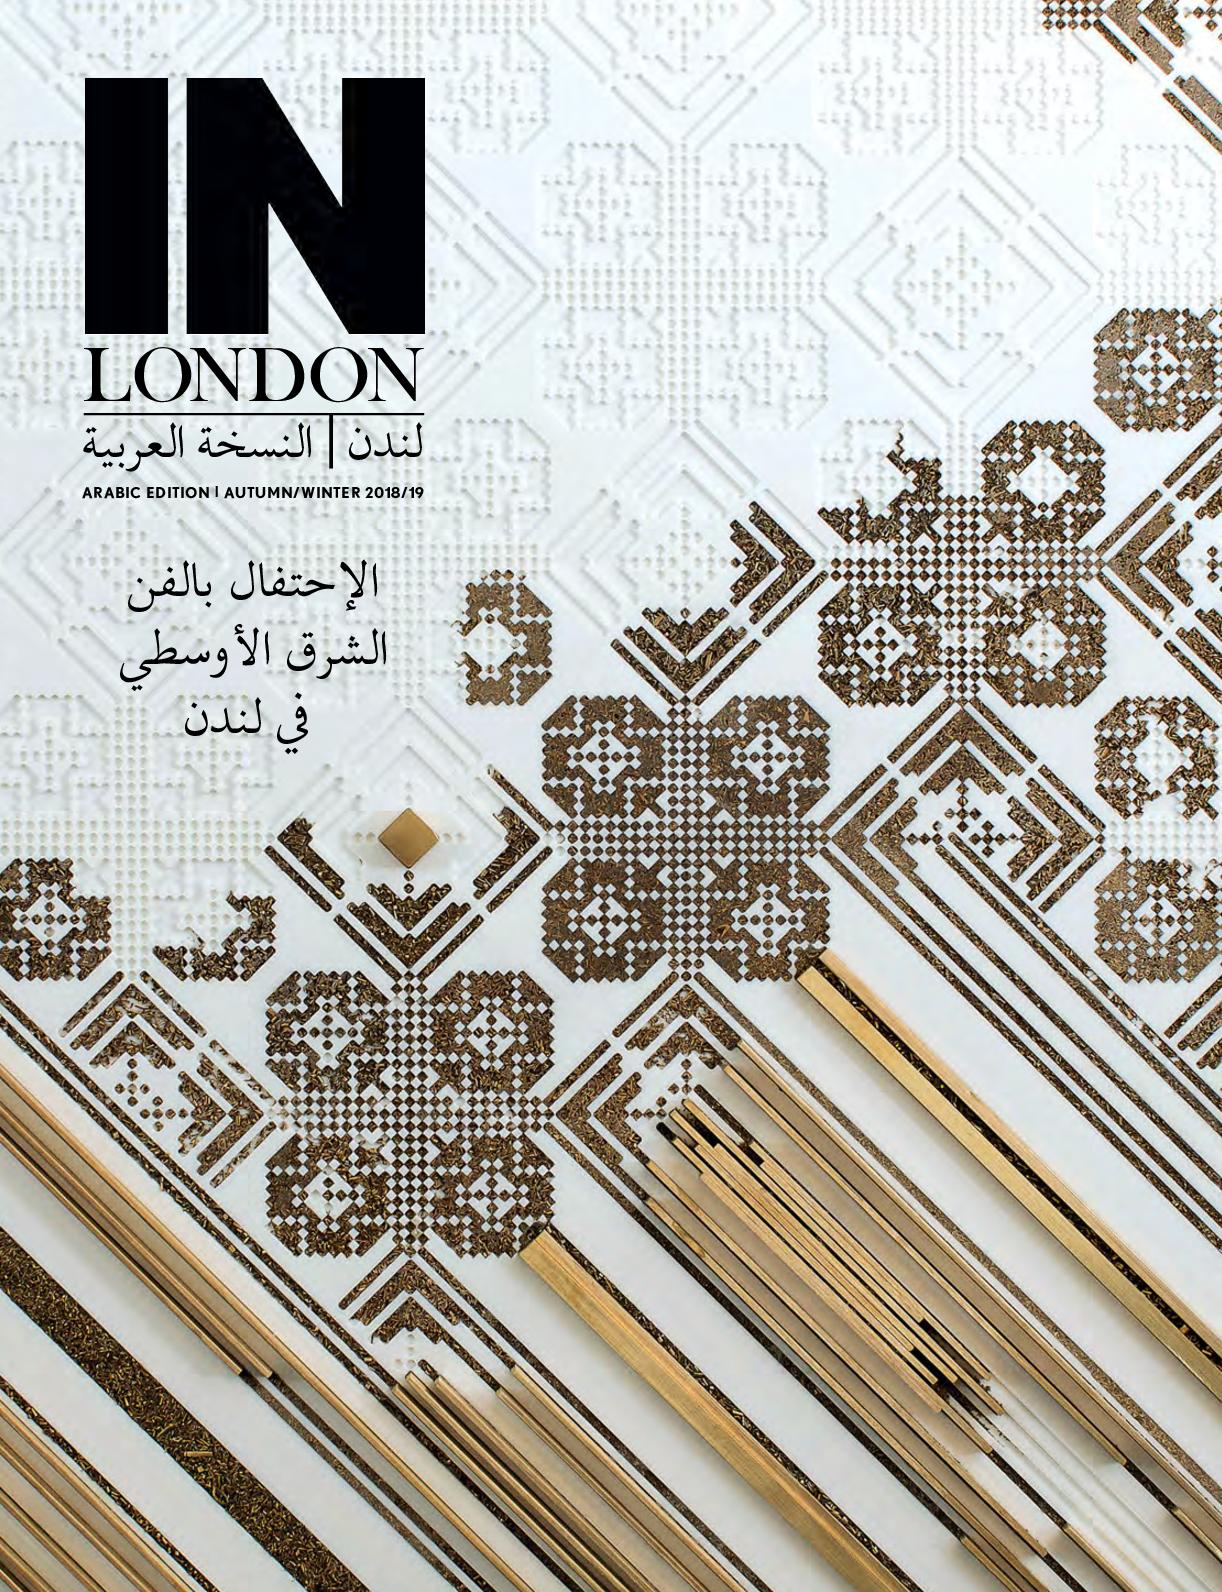 be3932cef Calaméo - IN LONDON ARABIC EDITION 2018 2ND EDITION